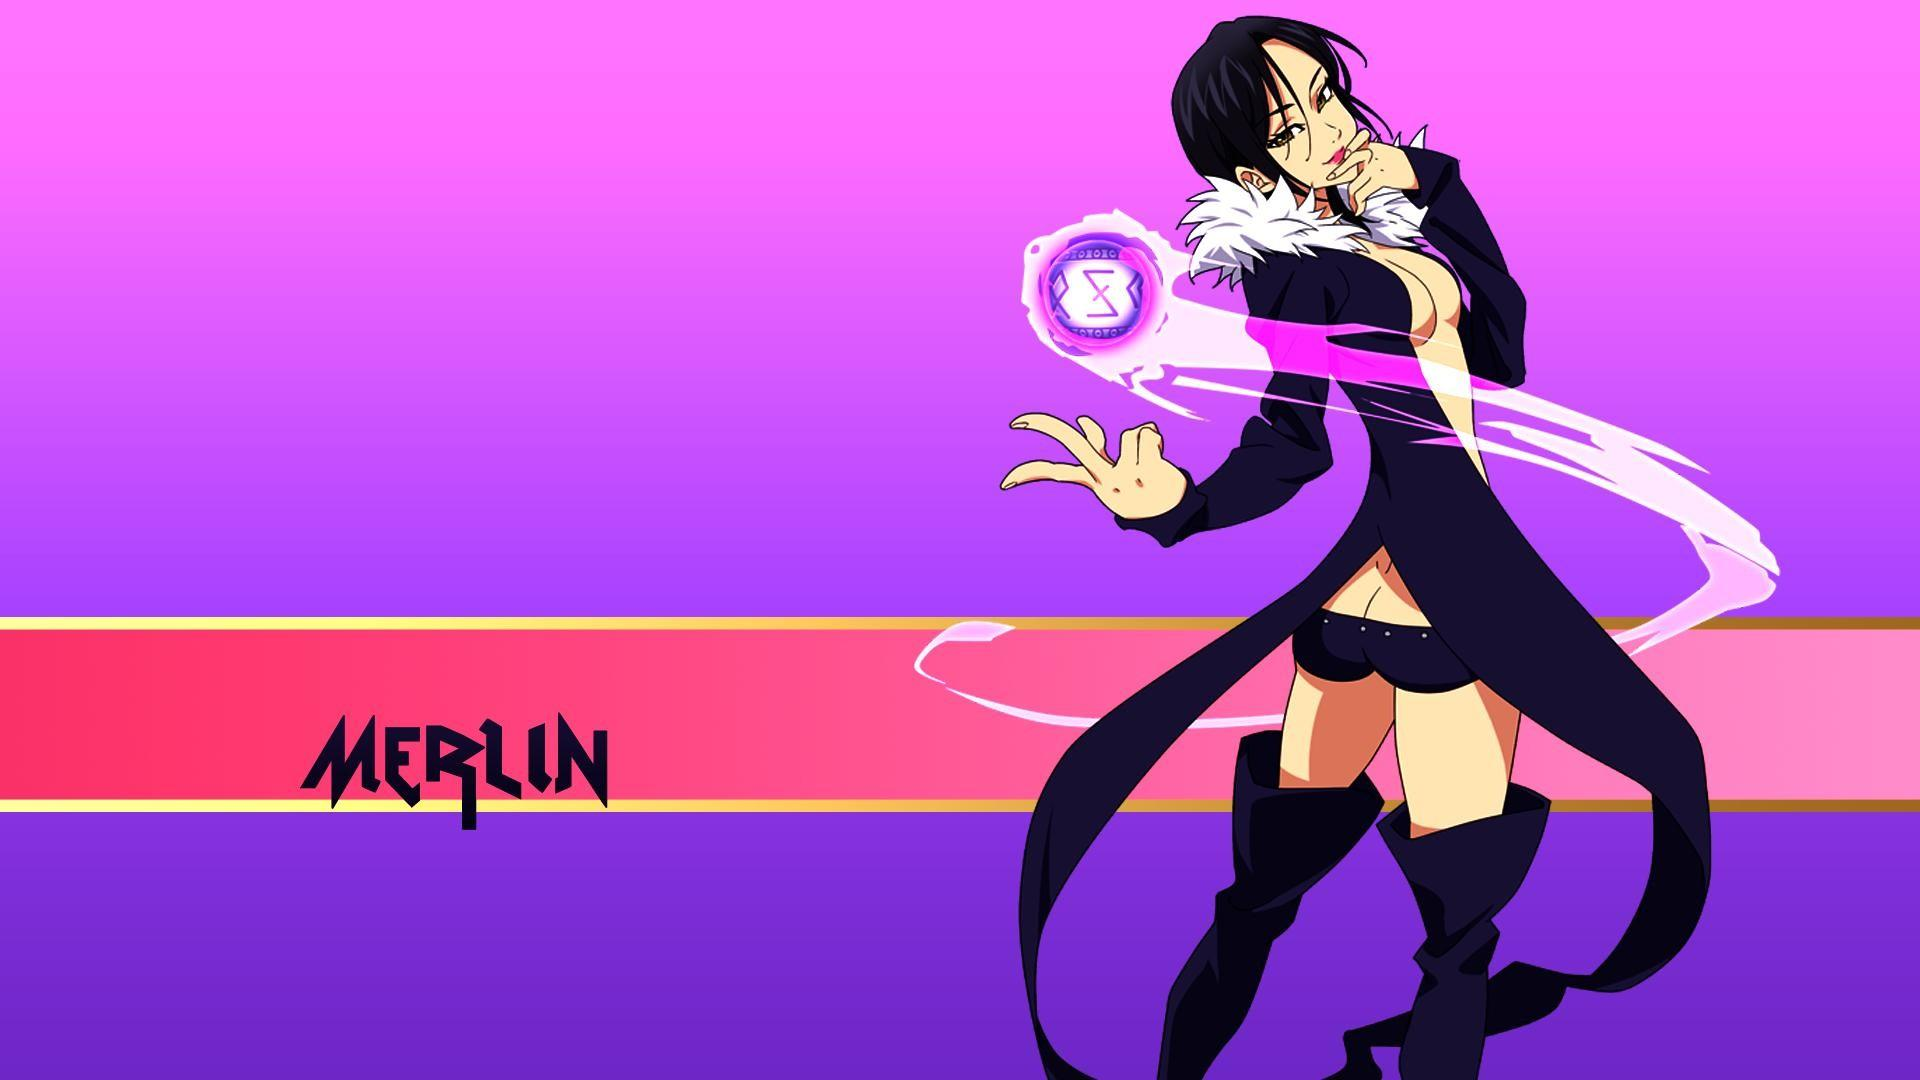 Merlin Seven Deadly Sins Wallpapers Wallpaper Cave